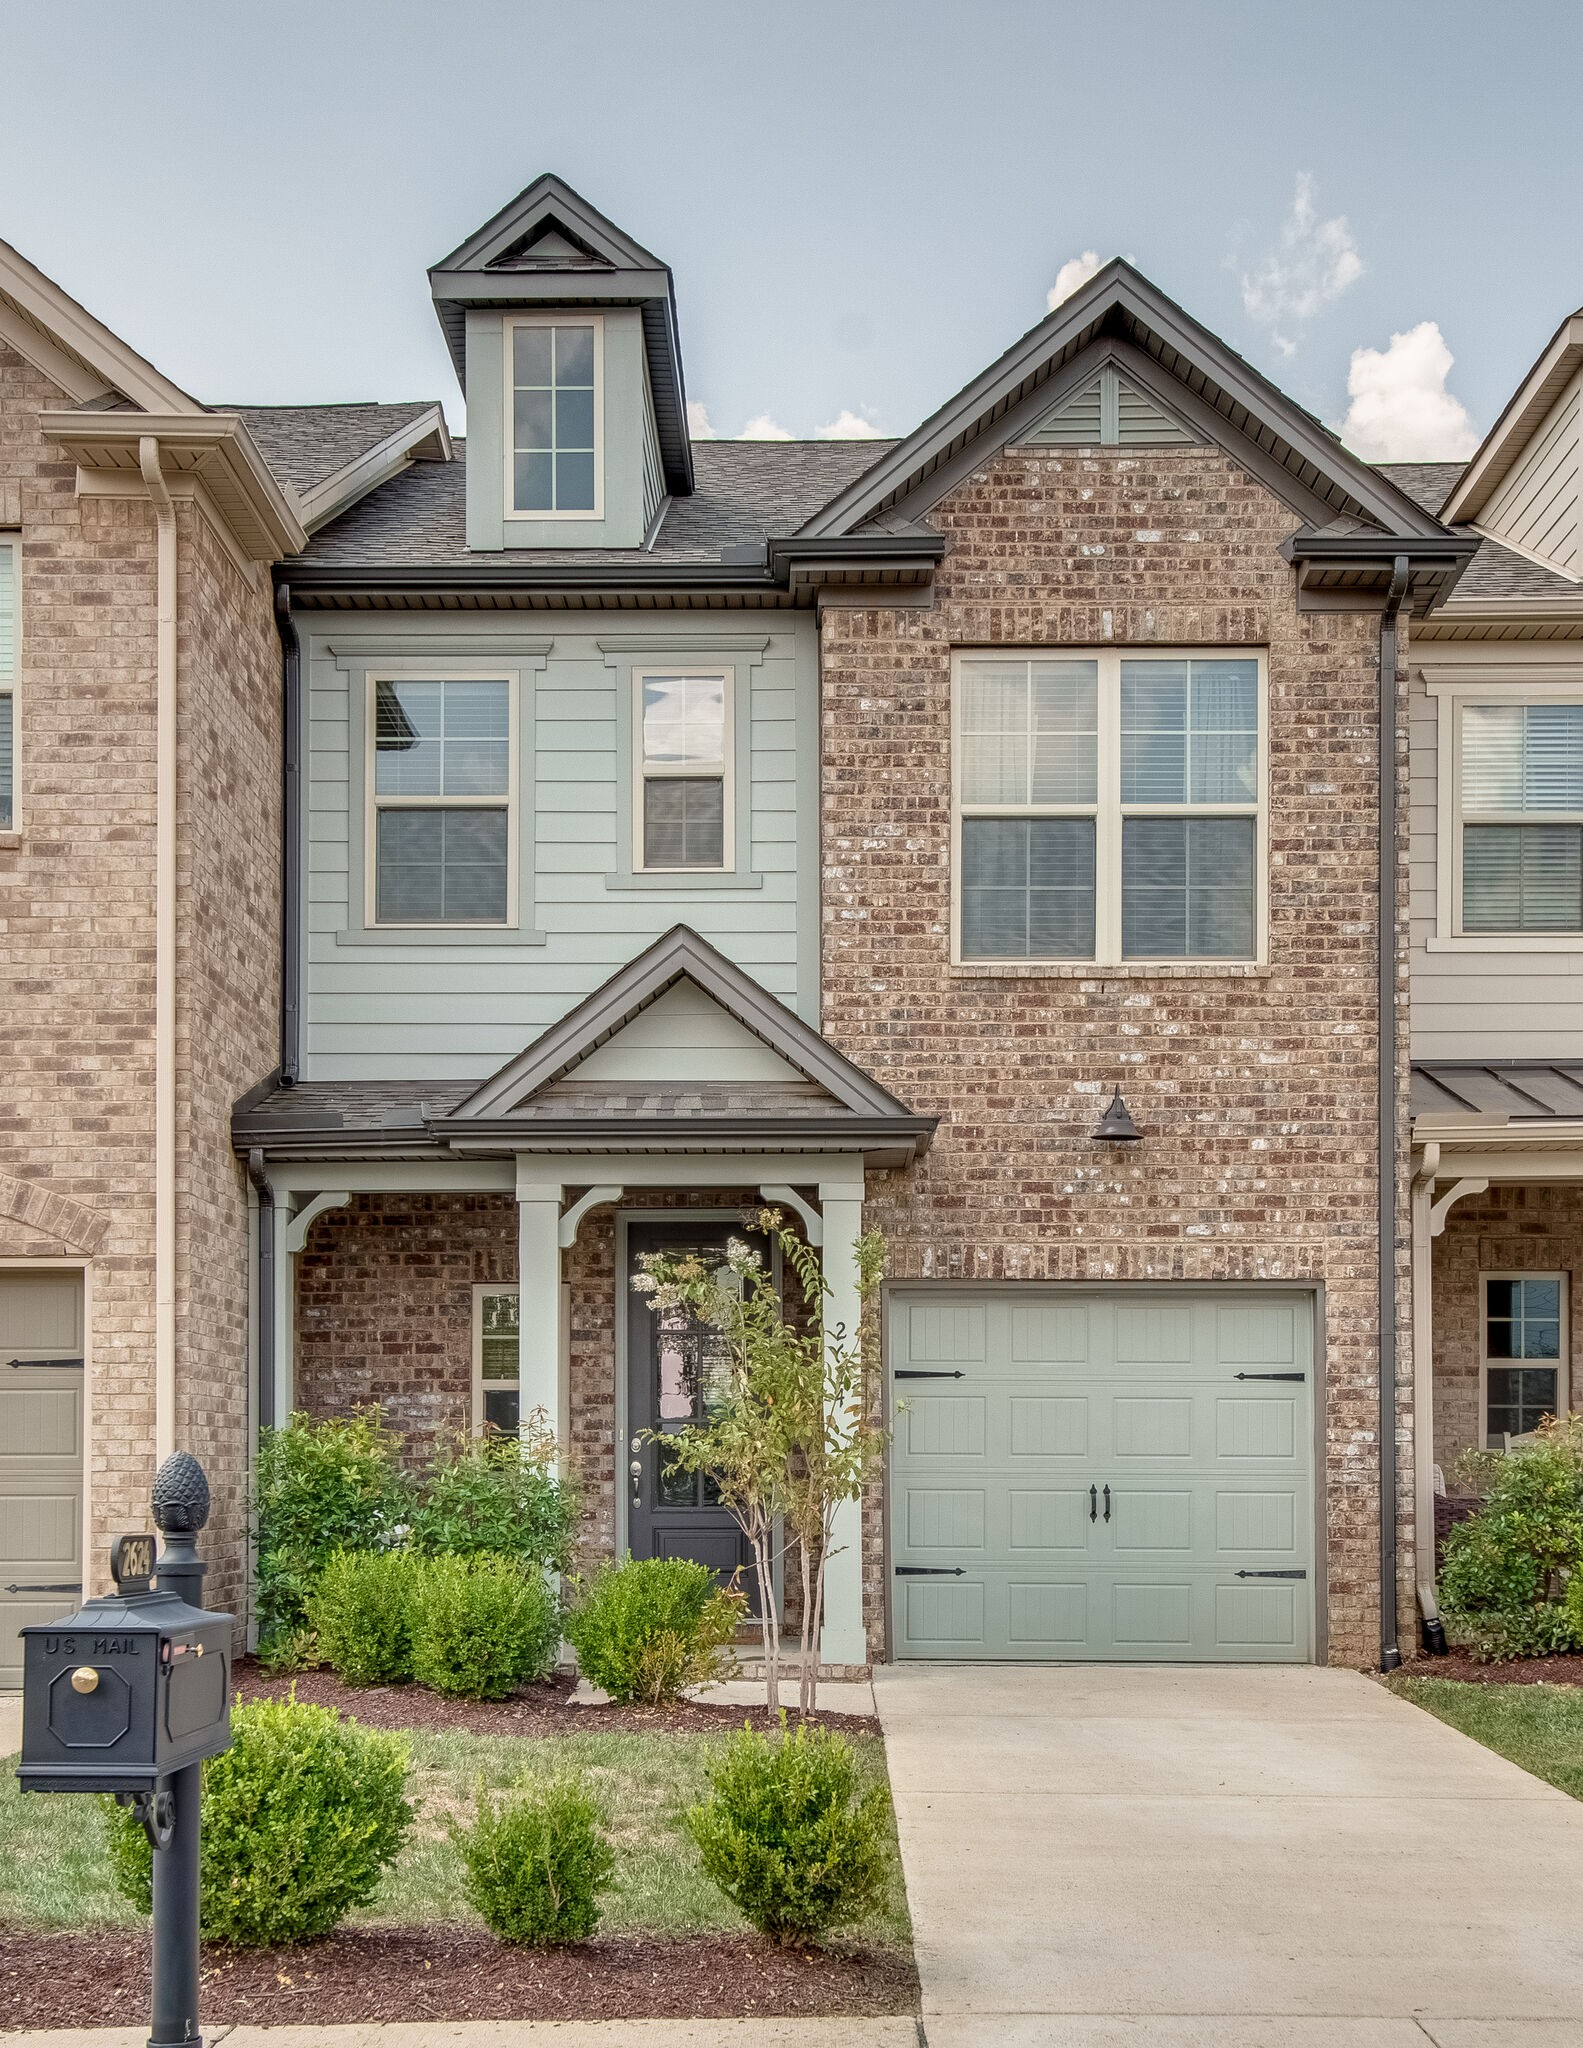 Beautiful open floor plan townhome! Upgraded hardwood throughout main floor, on stairs and in upstairs hallway, upgraded granite in kitchen and marble countertops in primary bath, upgraded carpet and carpet pads, upgraded primary shower, vaulted ceiling in primary bedroom, and extended back patio. You will fall in love as soon as you set foot in the door!